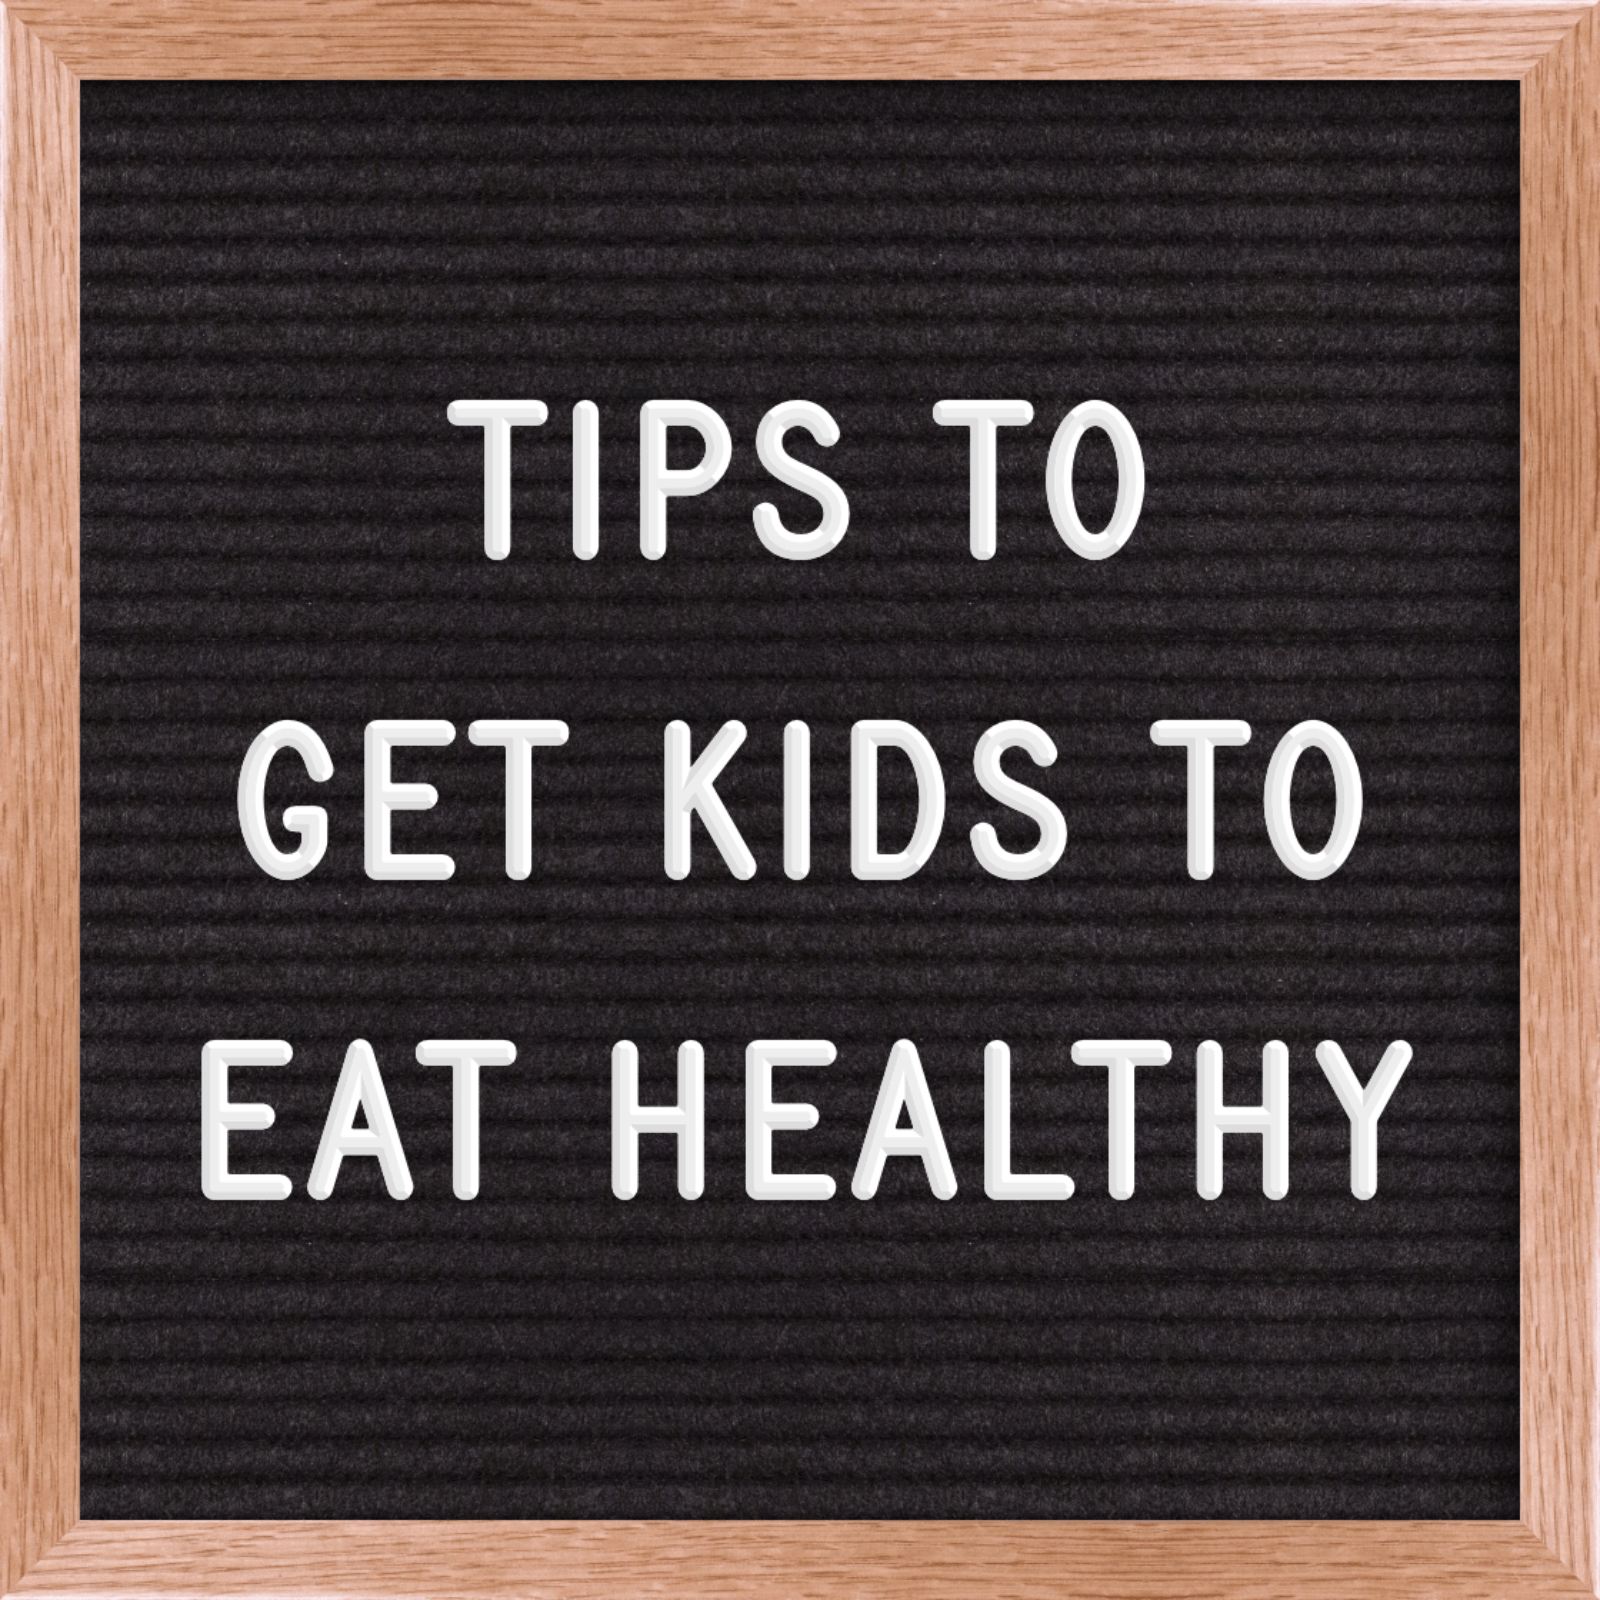 letterboard that says tips to get kids to eat healthy